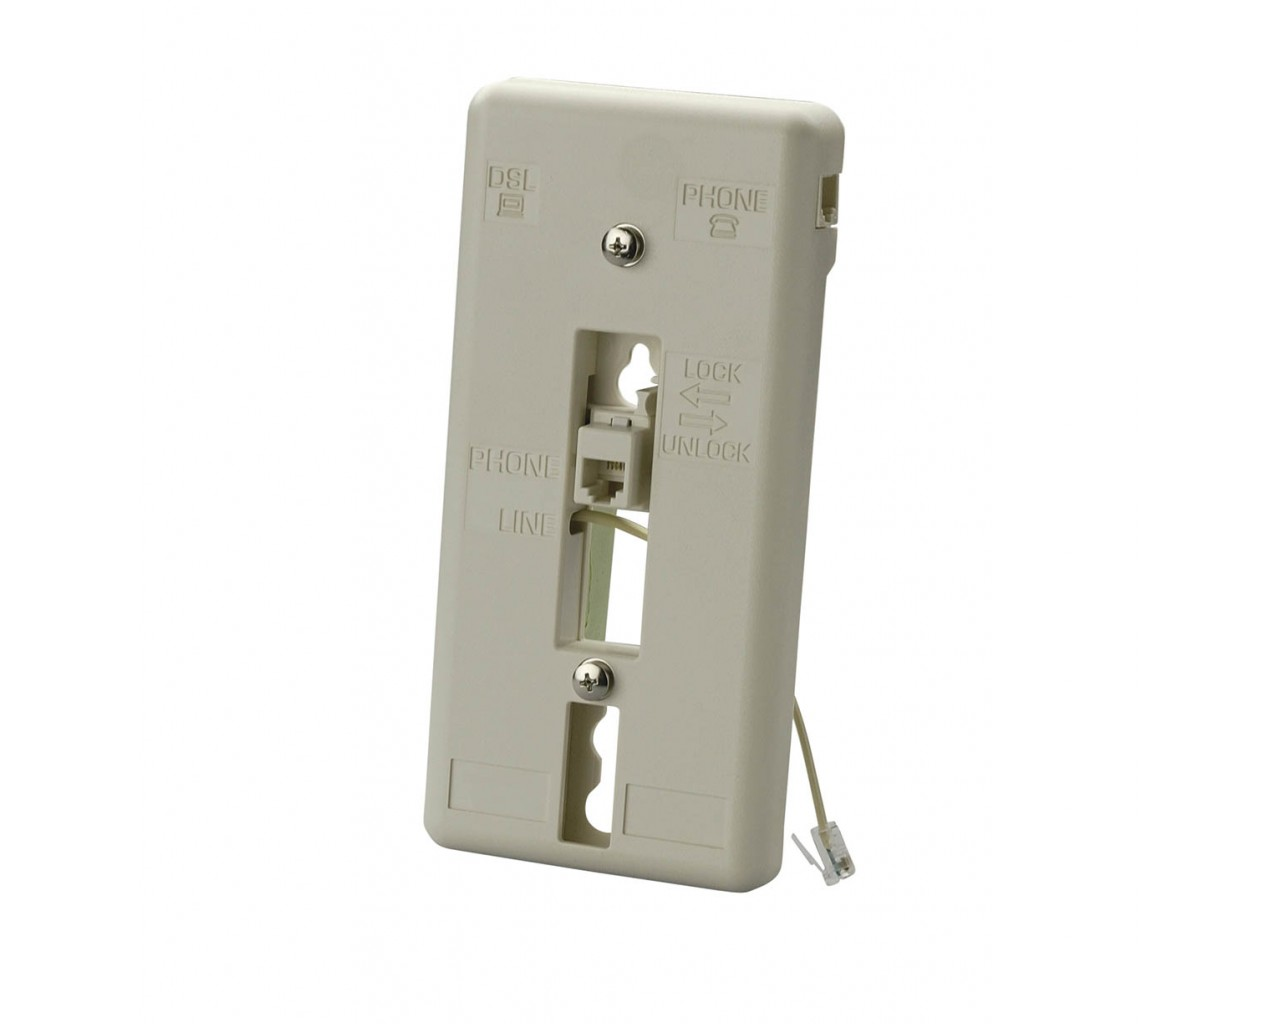 Telephone Phone Jack Wire Diagram In Addition Cat 5 Cable Wiring